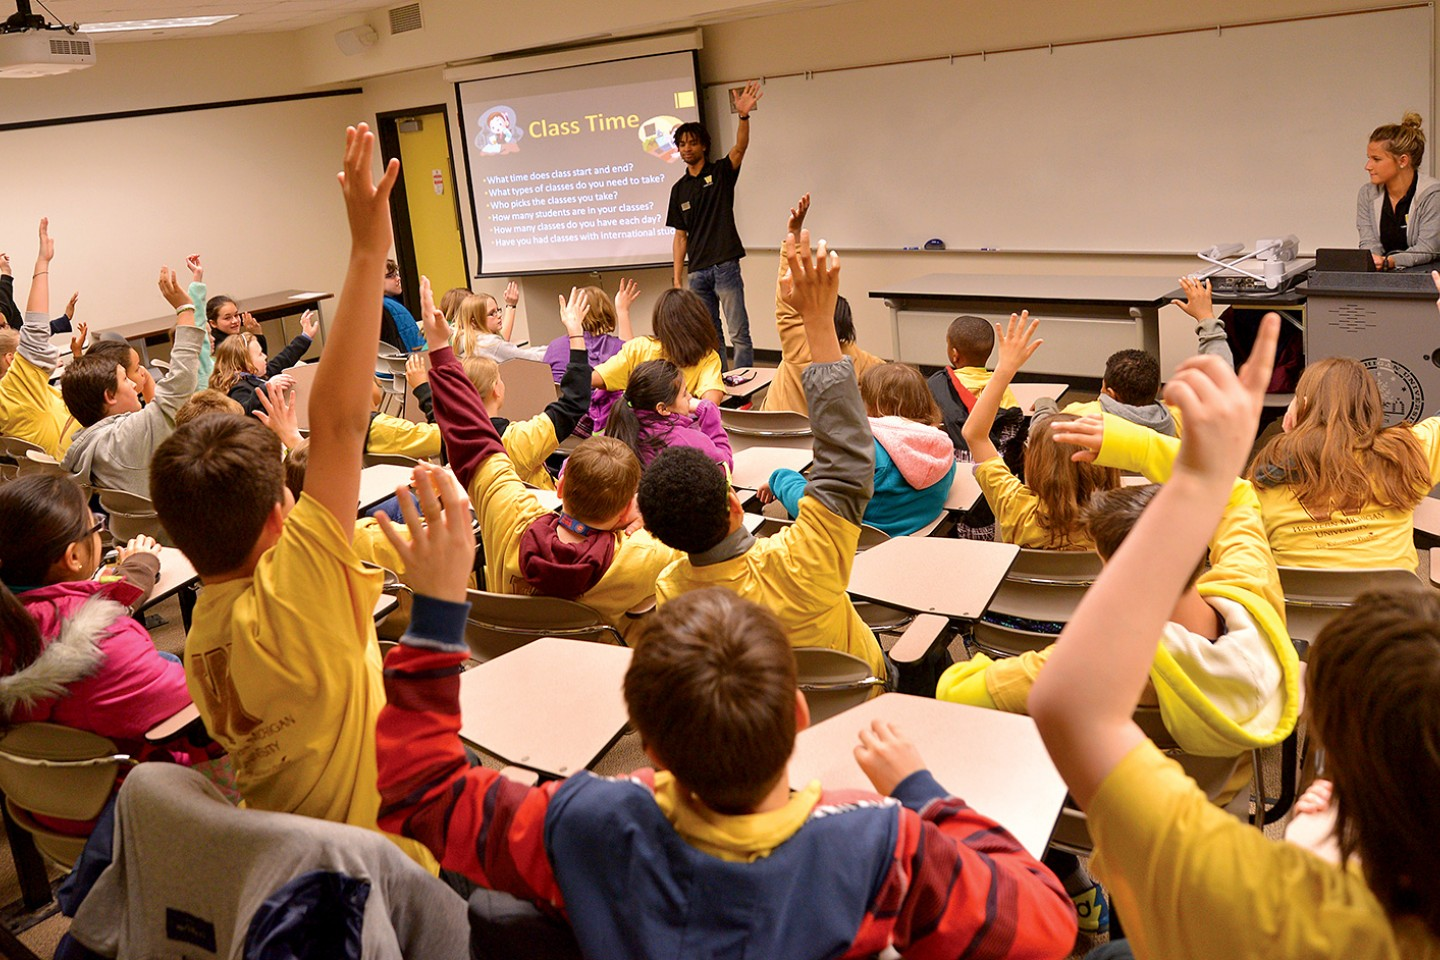 Photo of middle-school students sitting in a classroom and raising their hands.